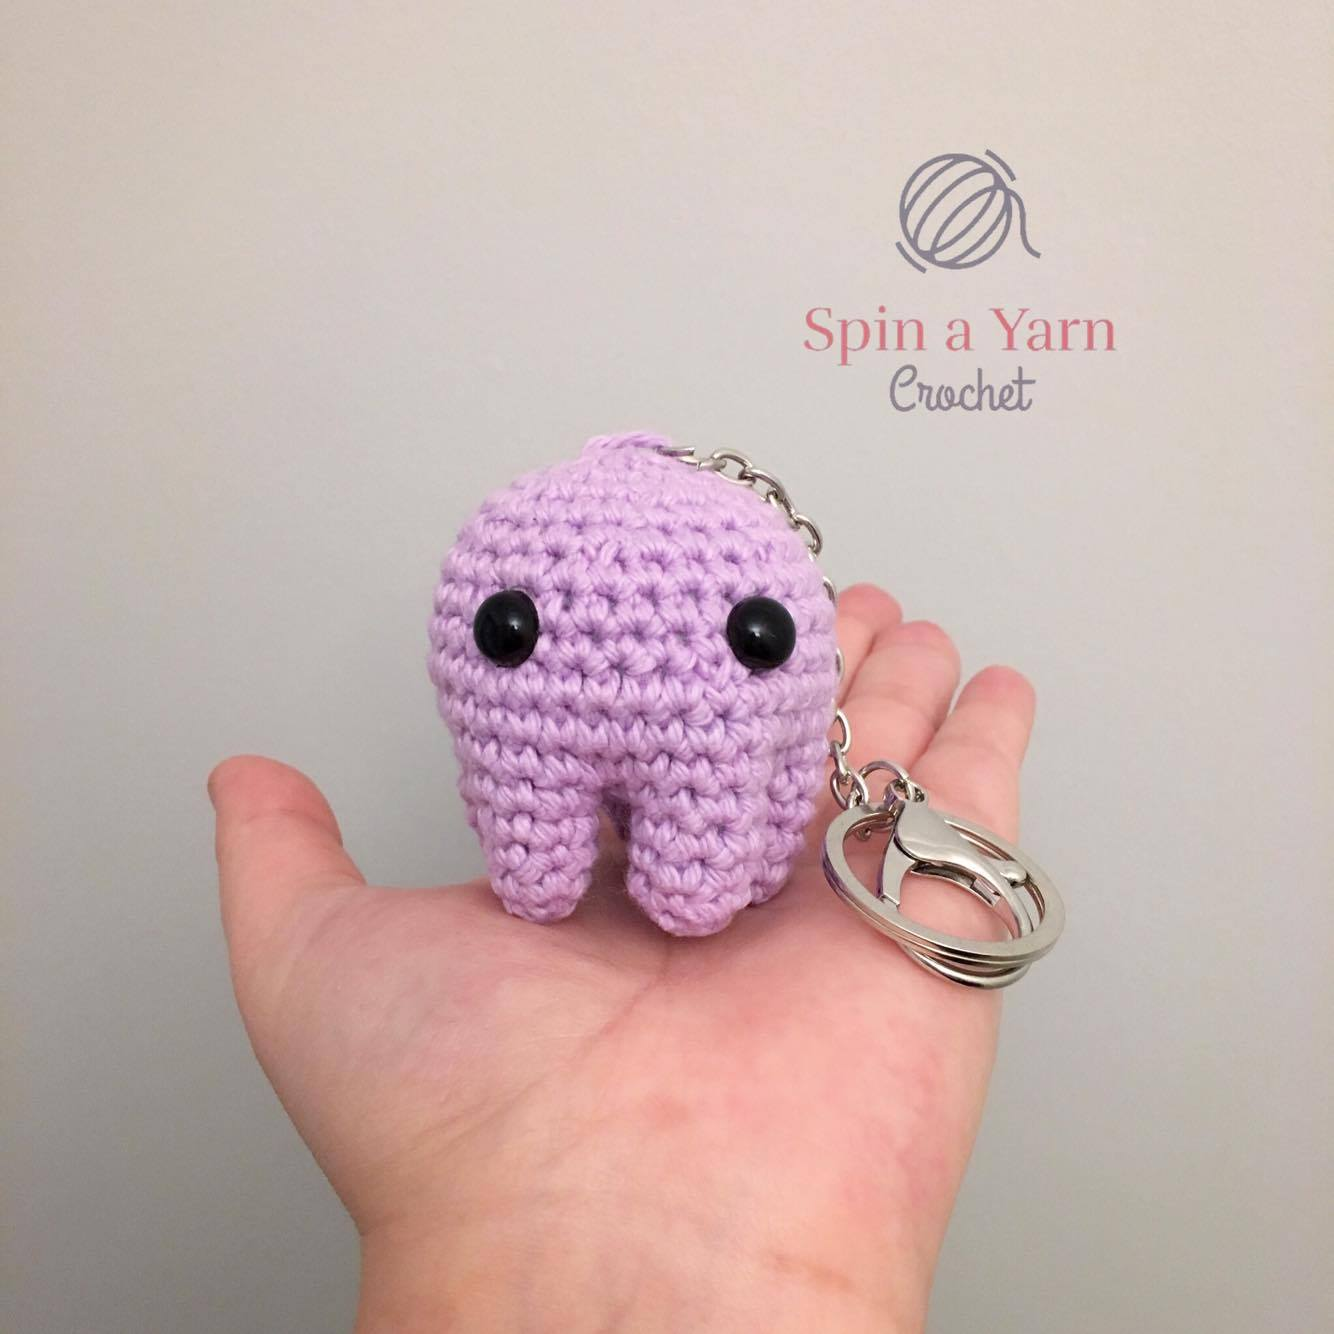 Julia jellyfish free crochet pattern spin a yarn crochet bankloansurffo Choice Image